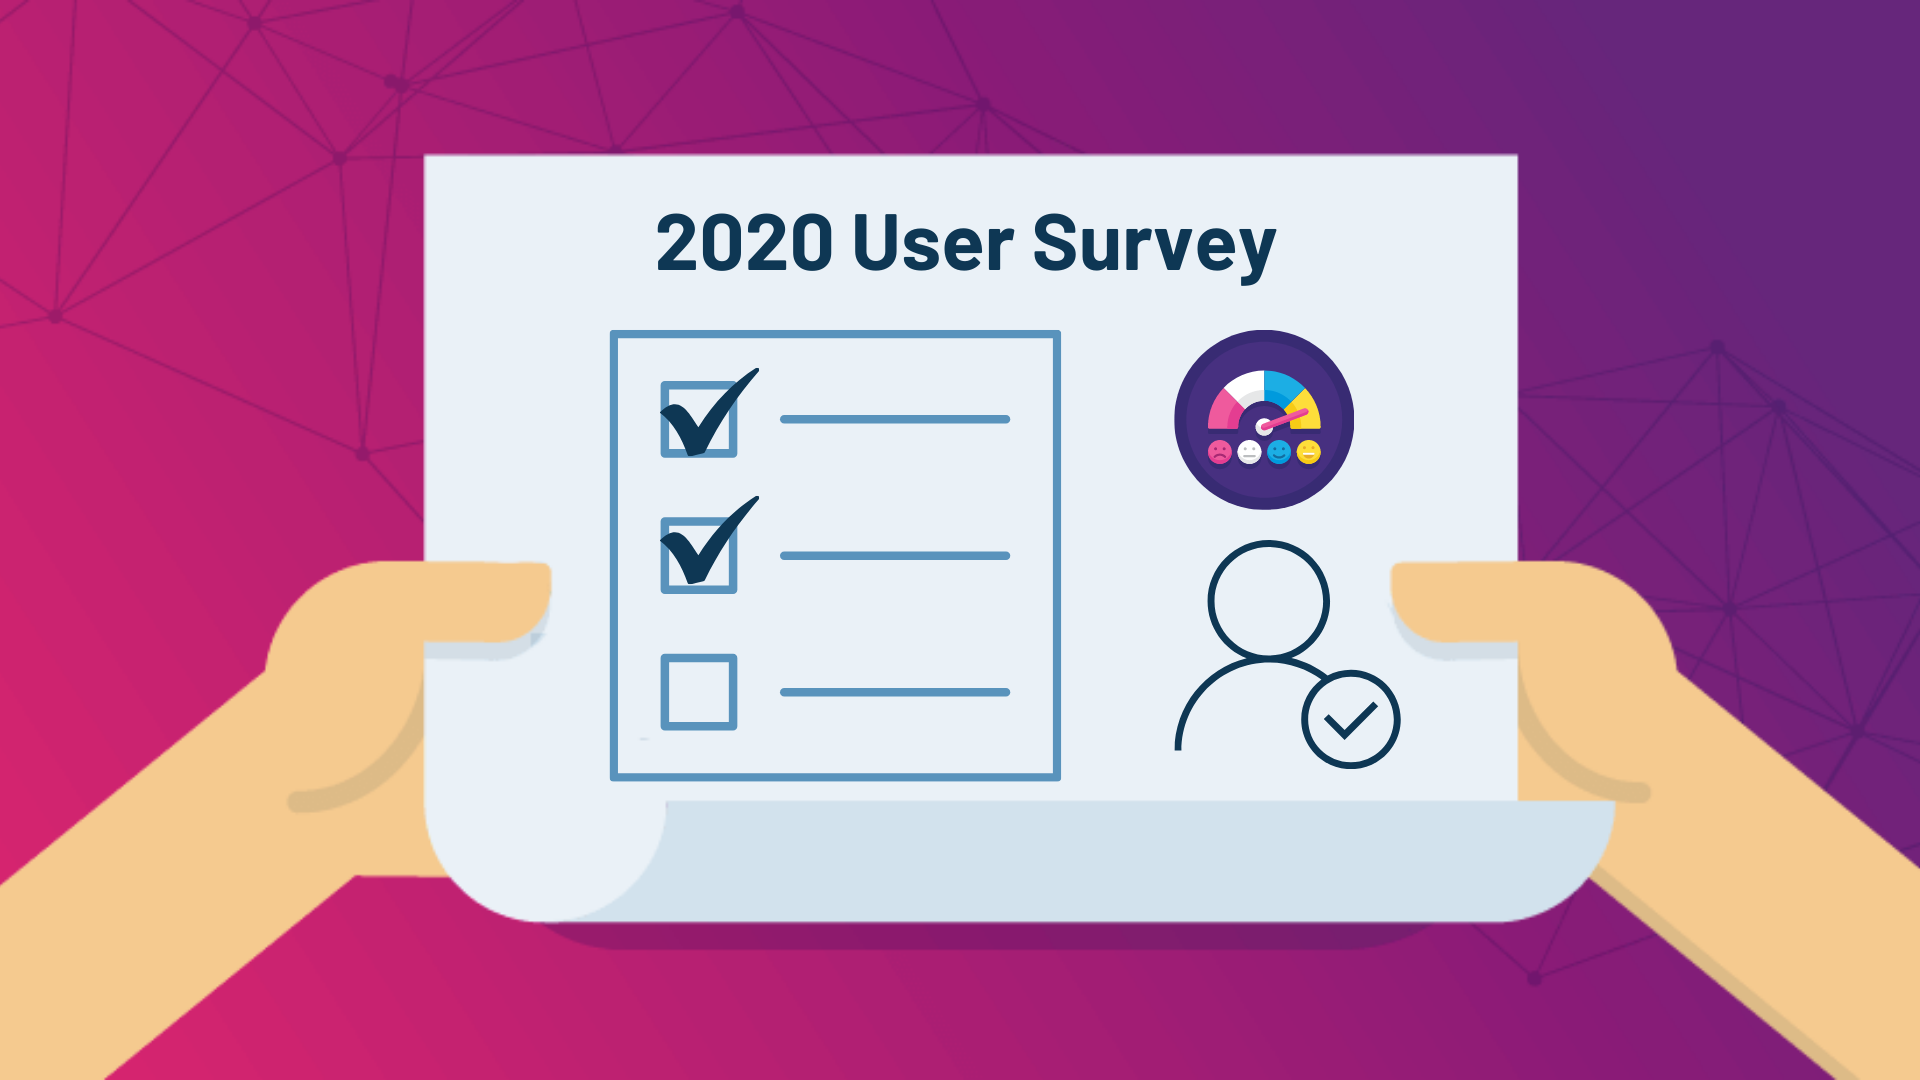 TestRail, 2020 User Survey